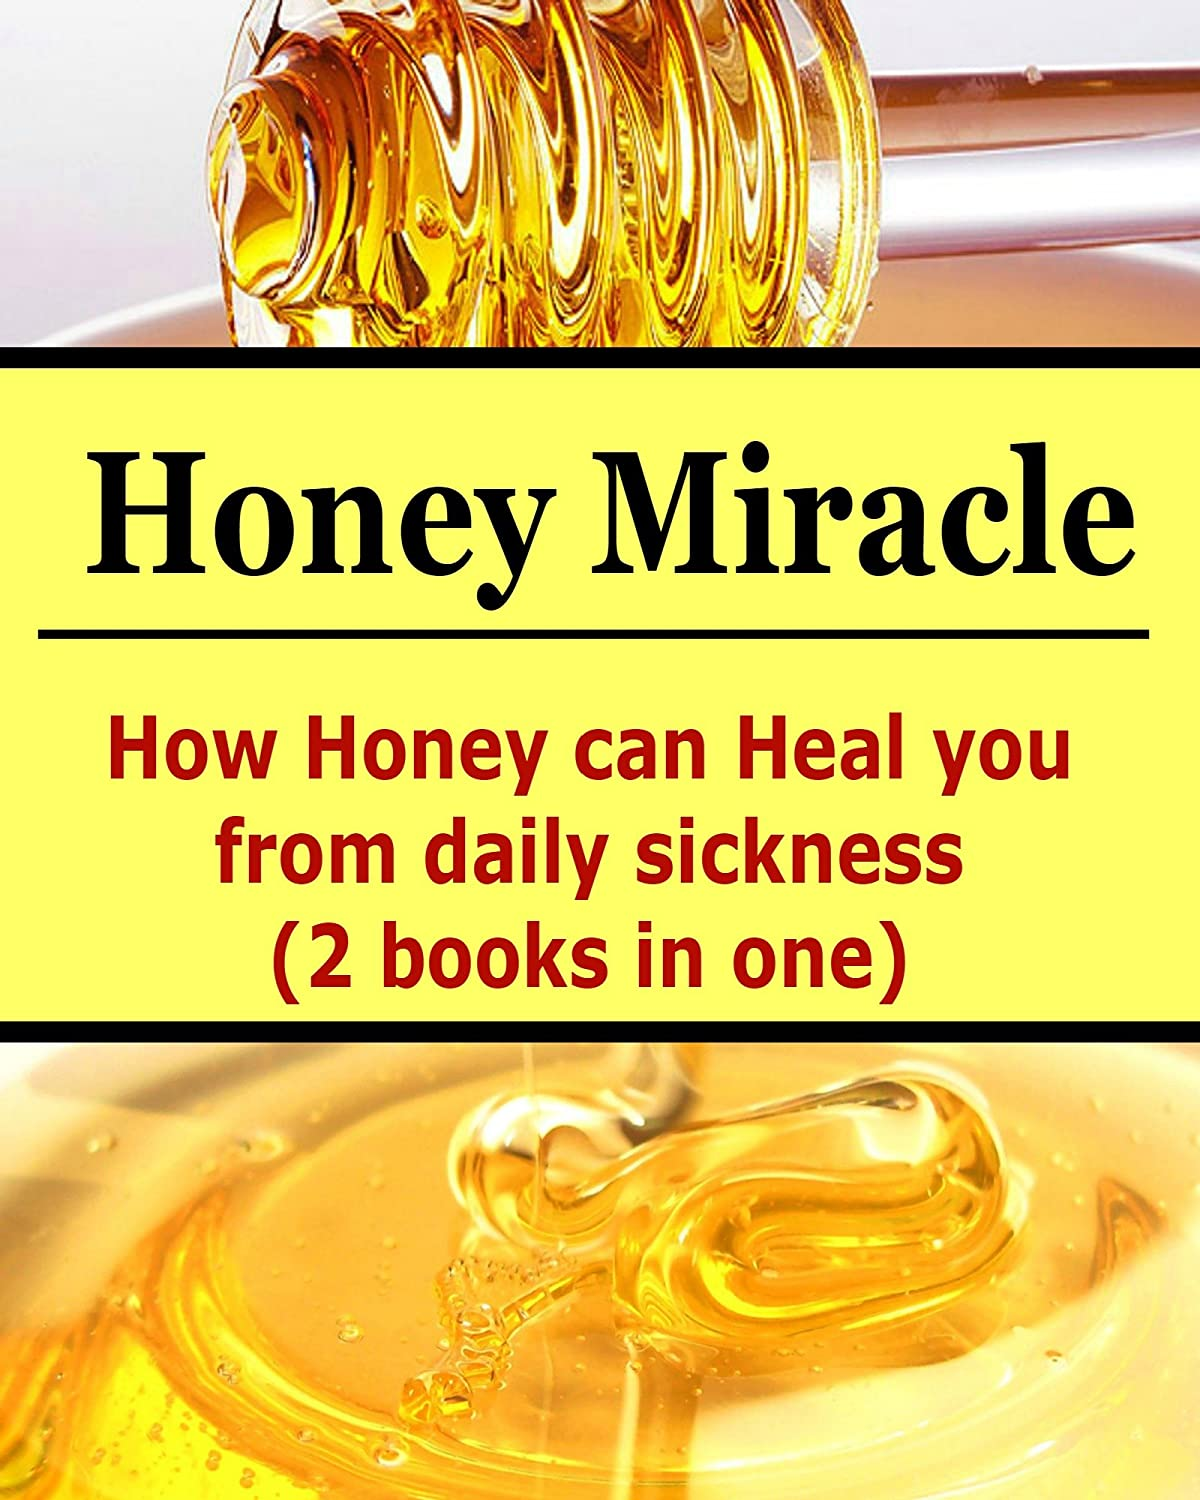 http://www.amazon.com/Honey-Miracle-Daily-Sicknesses-books-ebook/dp/B00OR1785S/ref=as_sl_pc_ss_til?tag=lettfromahome-20&linkCode=w01&linkId=AA4HUCTBD2QPLBFN&creativeASIN=B00OR1785S